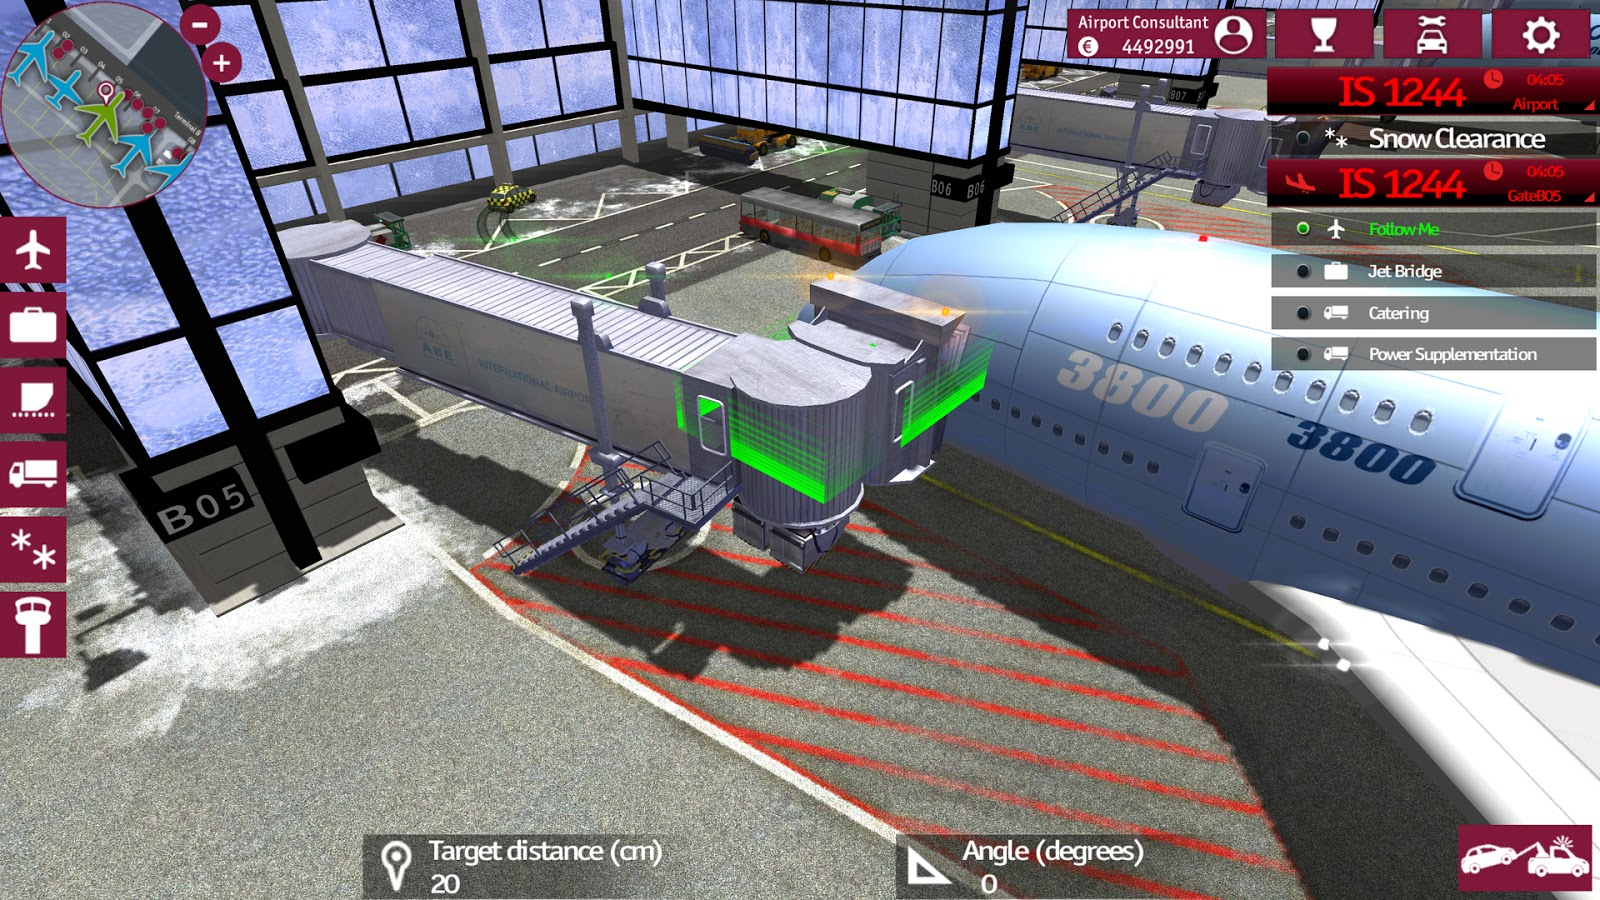 Airport Control Simulator Free Download Full Version for PC